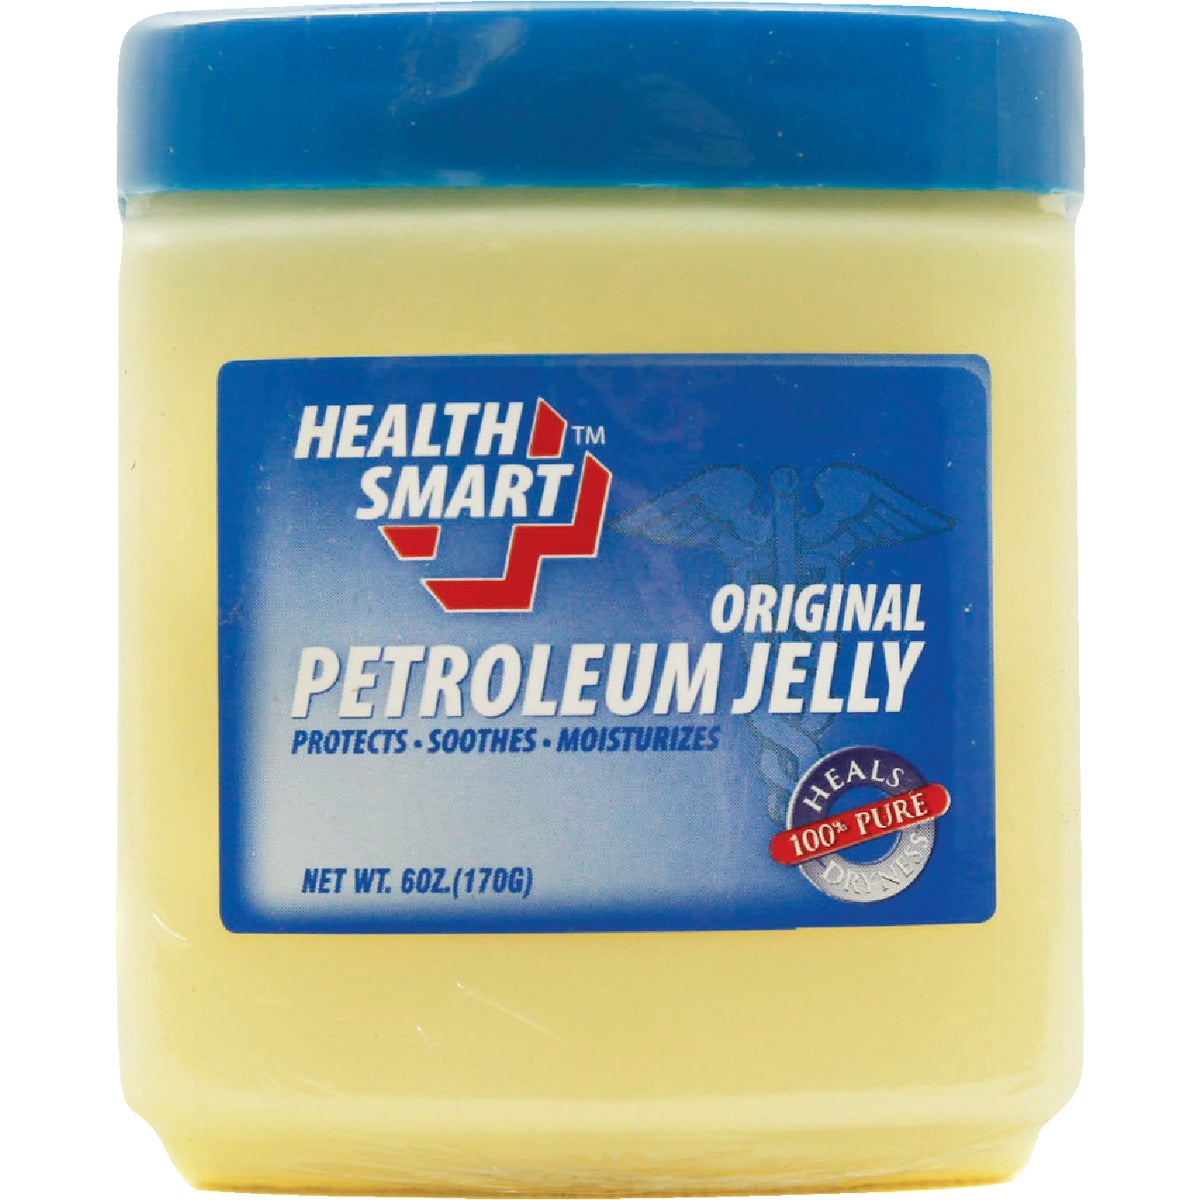 6OZ PETROLEUM JELLY - 90356 by Personal Care Prod